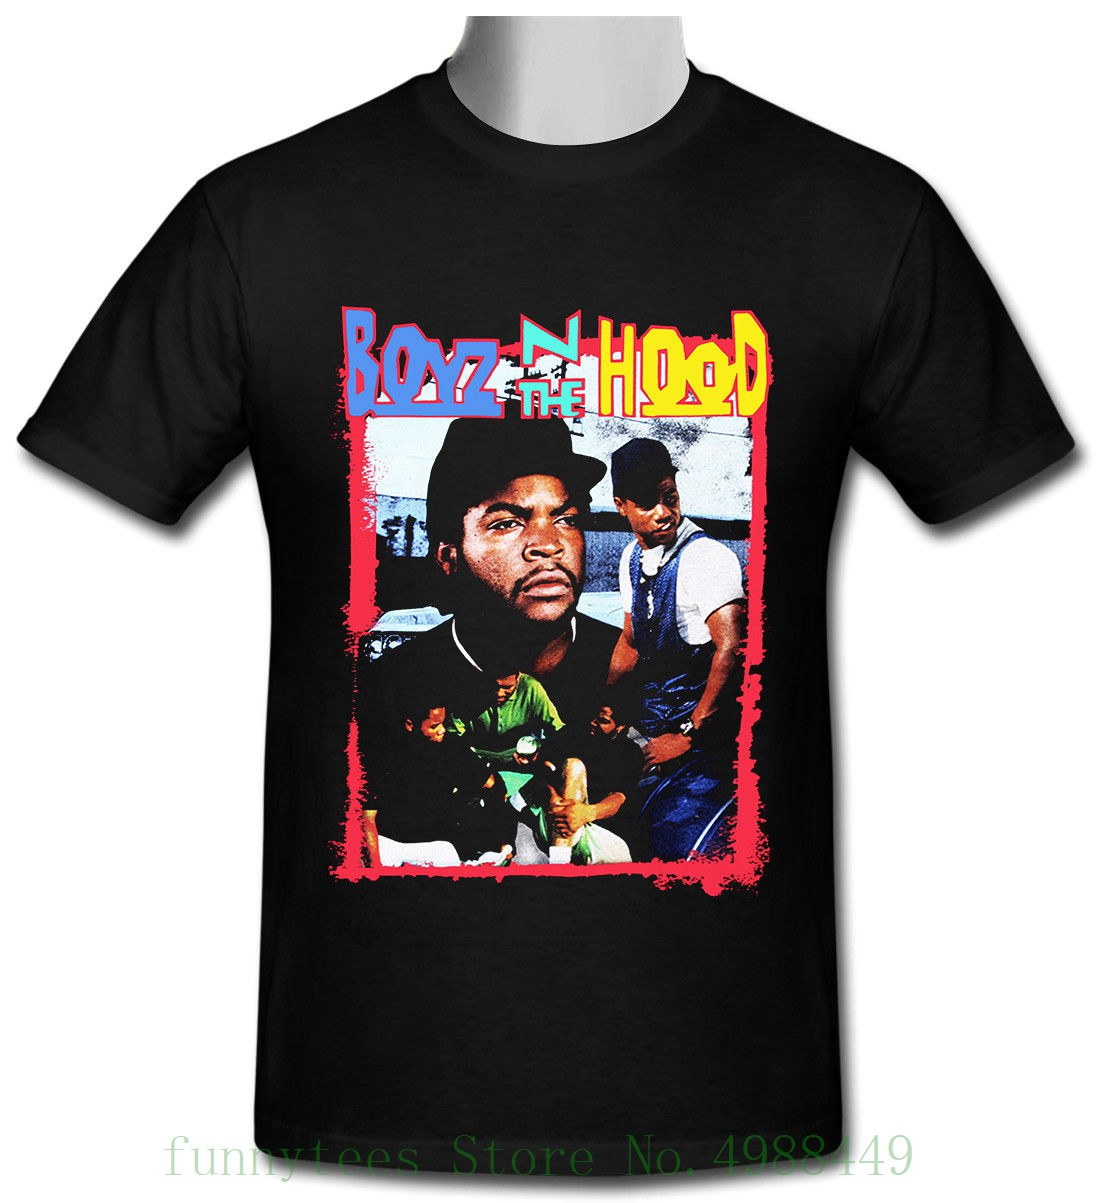 Boyz N The Hood Vintage Ice Cube Black T Shirt Size S To 2xl Classic Cotton Loose Round Collar Short Sleeve